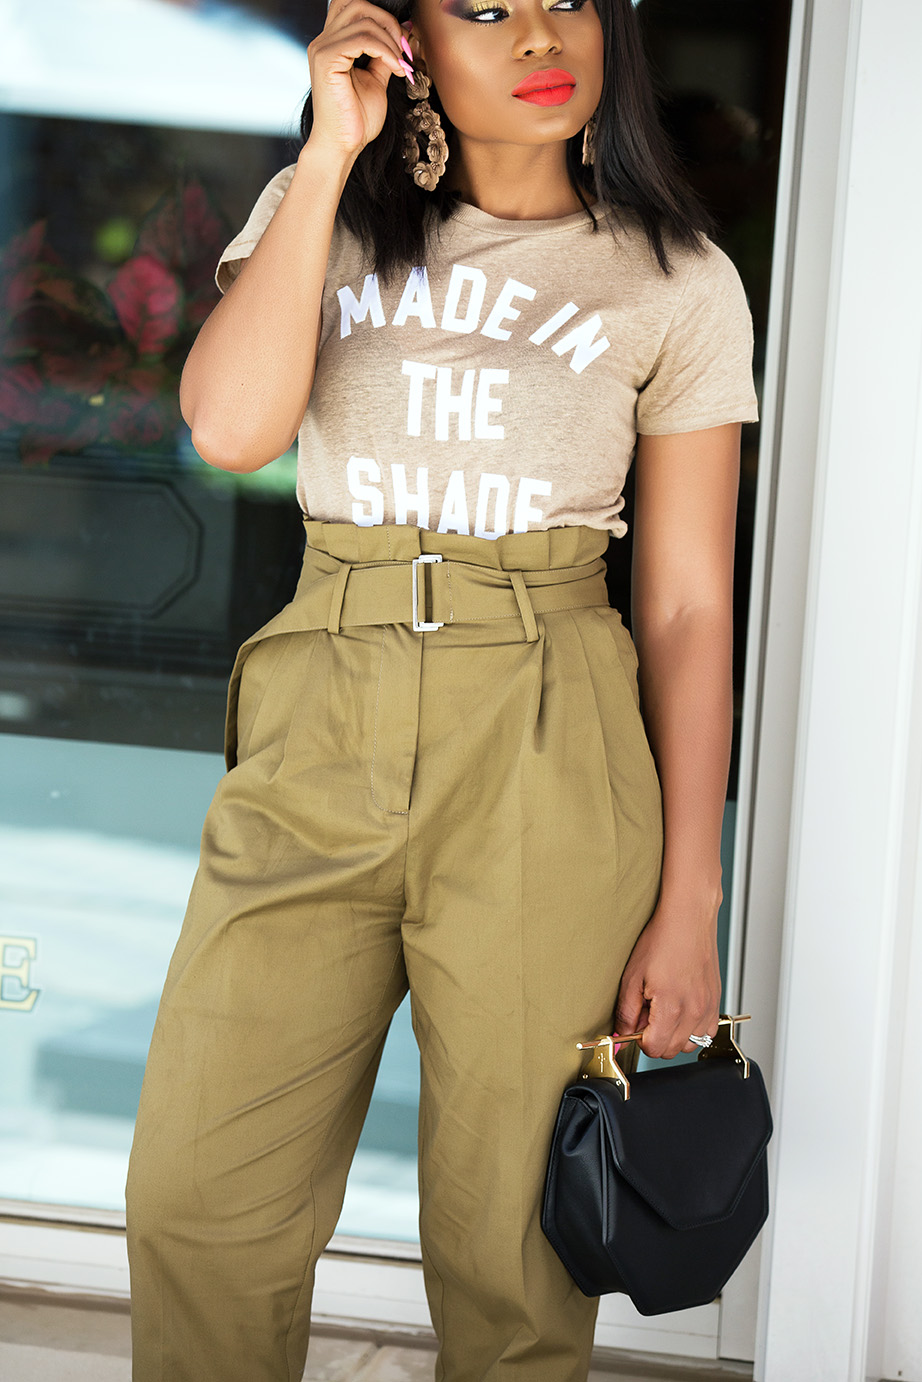 graphic tee, www.jadore-fashion.com